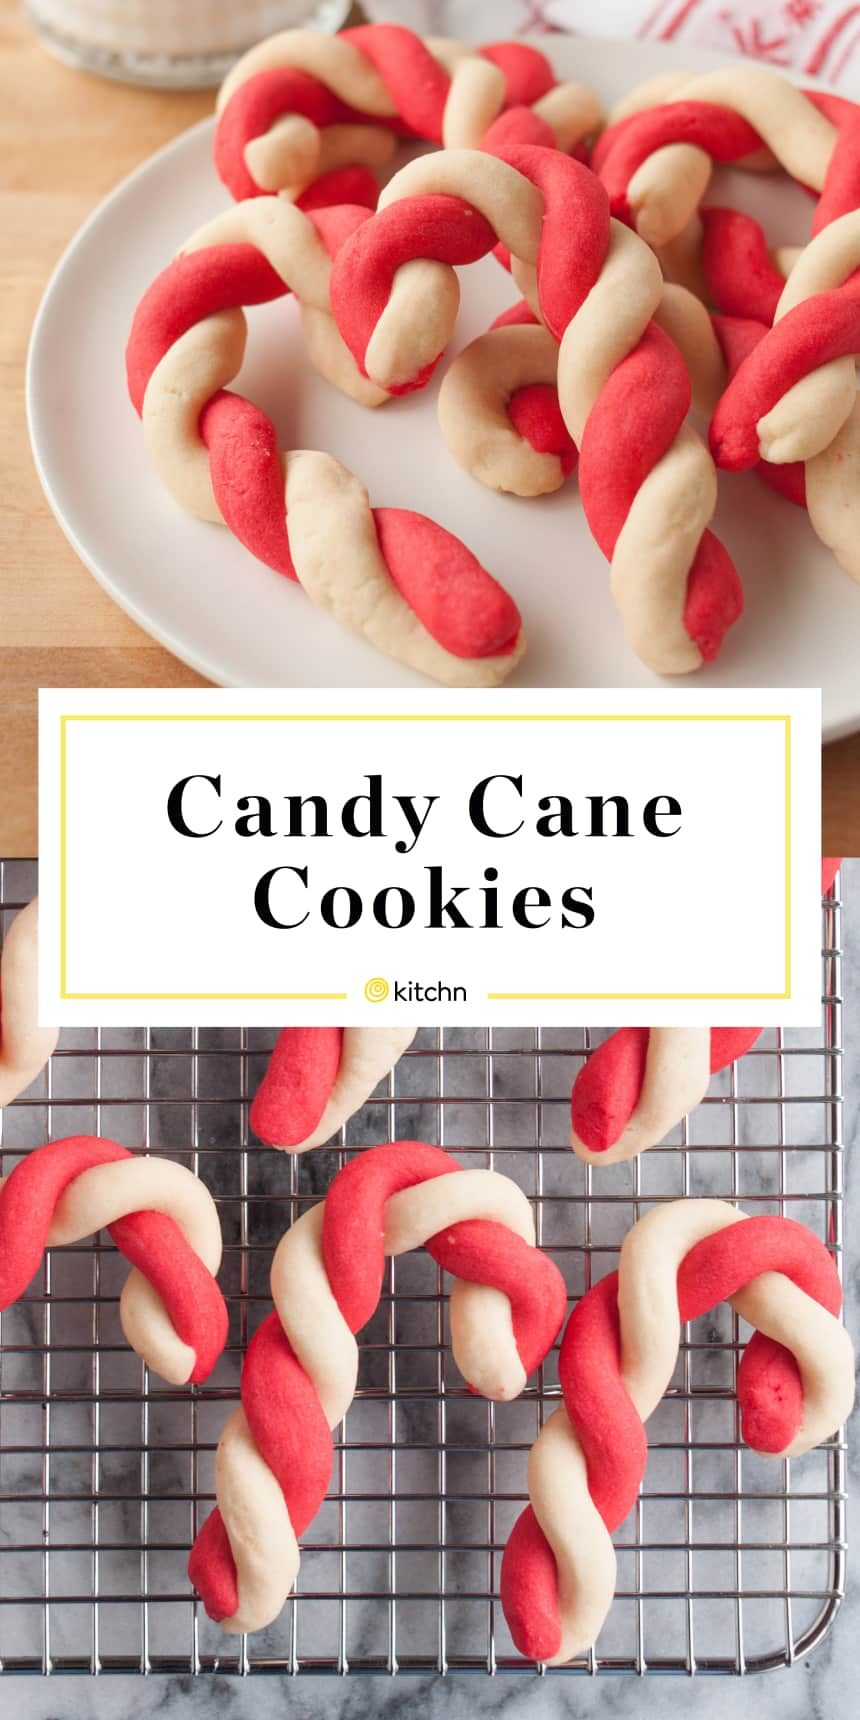 Candy Cane Cookies Recipe Candy cane cookies, Food